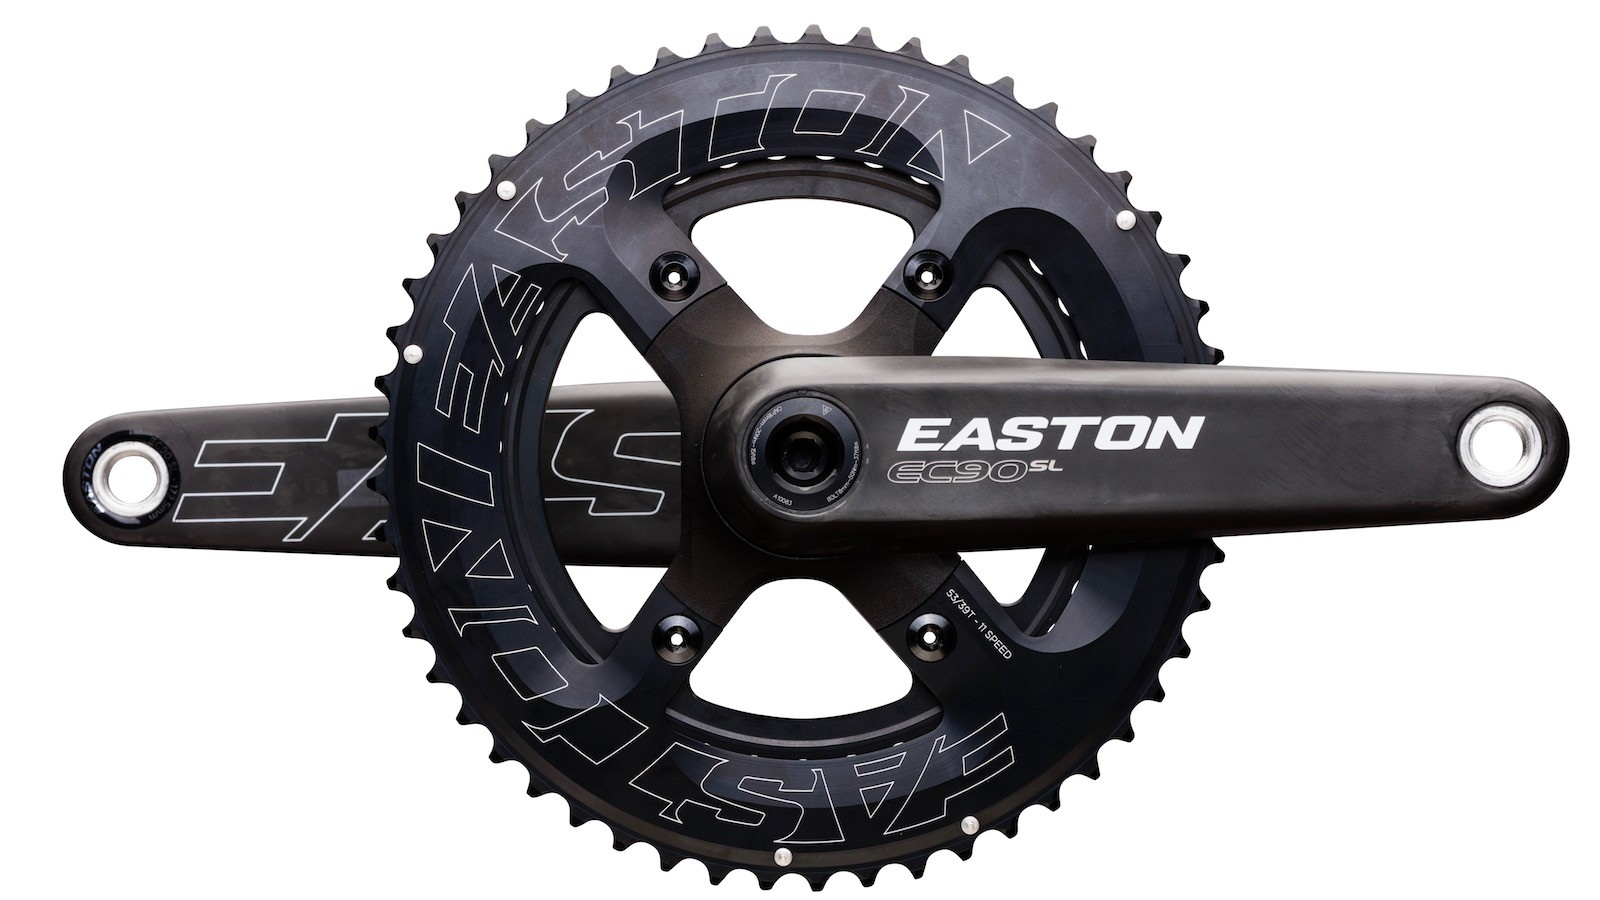 The new Easton EC90SL CINCH spindle-based power meter offers plenty of chainring, arm length and spindle options